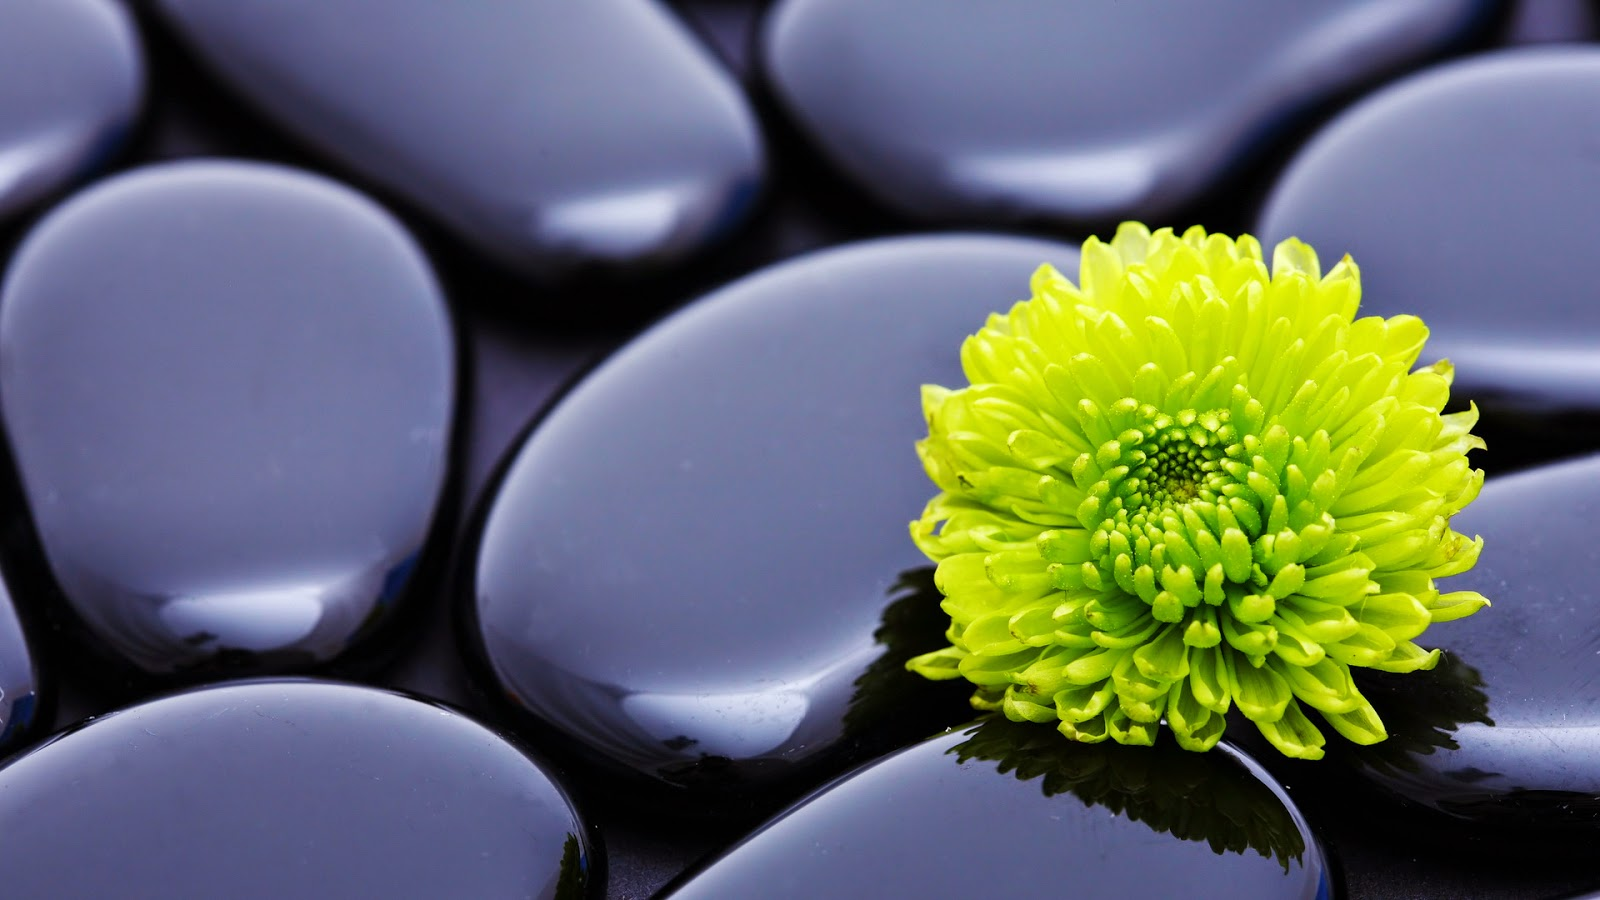 1920x1080-zen-flower-on-black-stones-picture.jpg